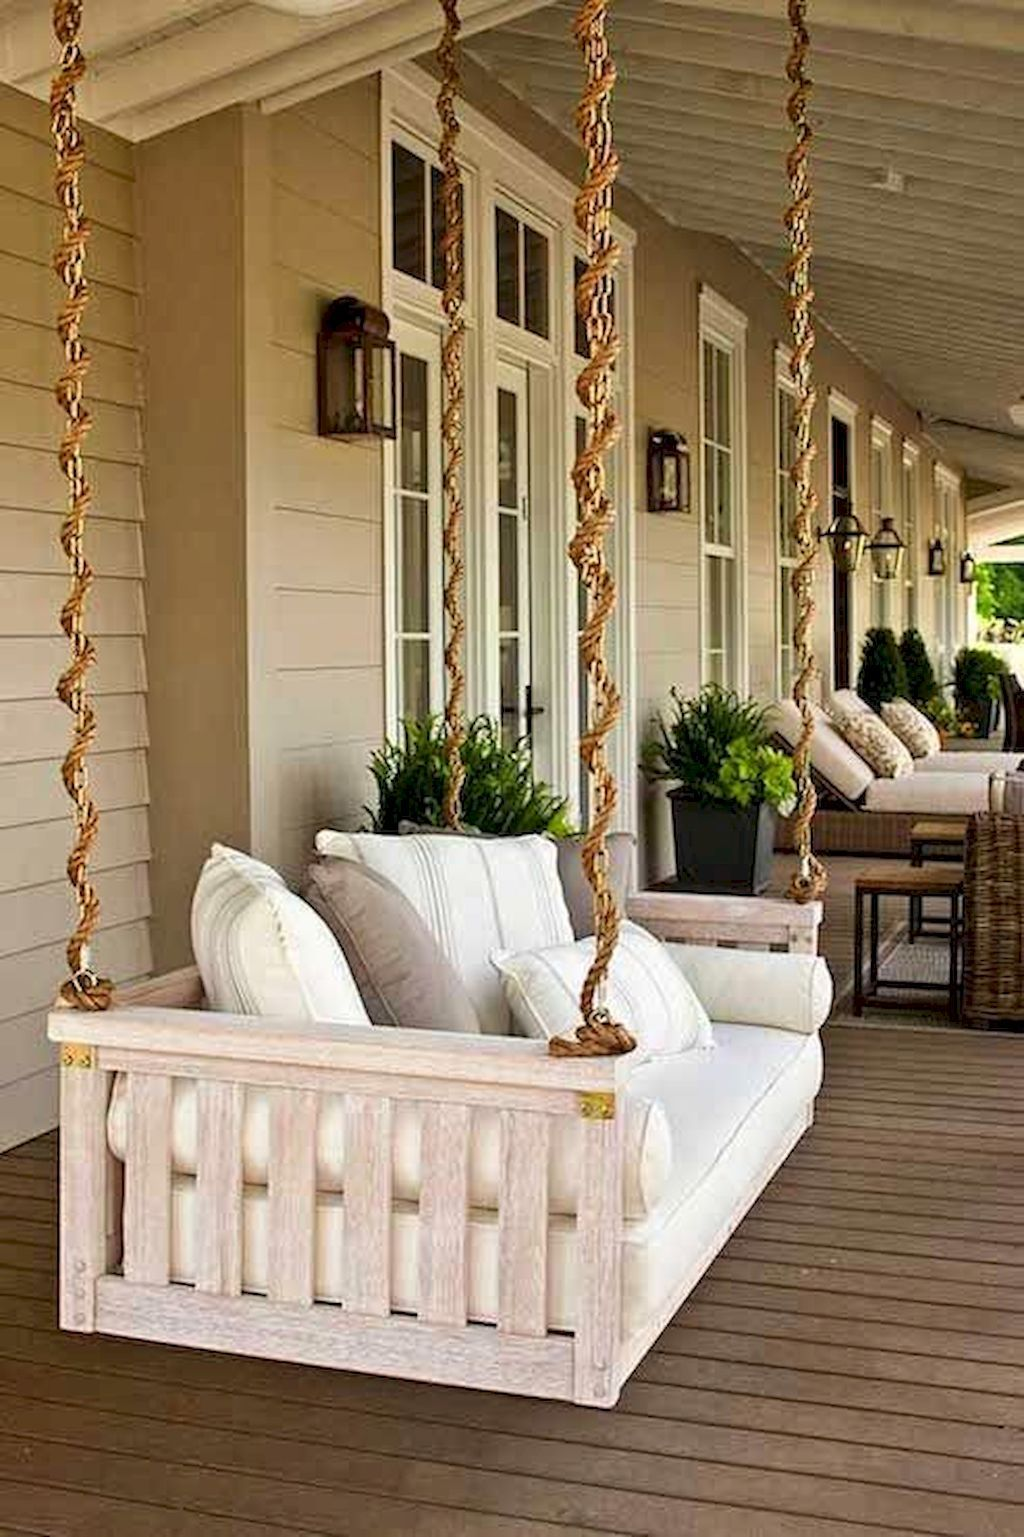 Awesome 56 Stunning Ideas For Lake House Decorations Https Decorapatio